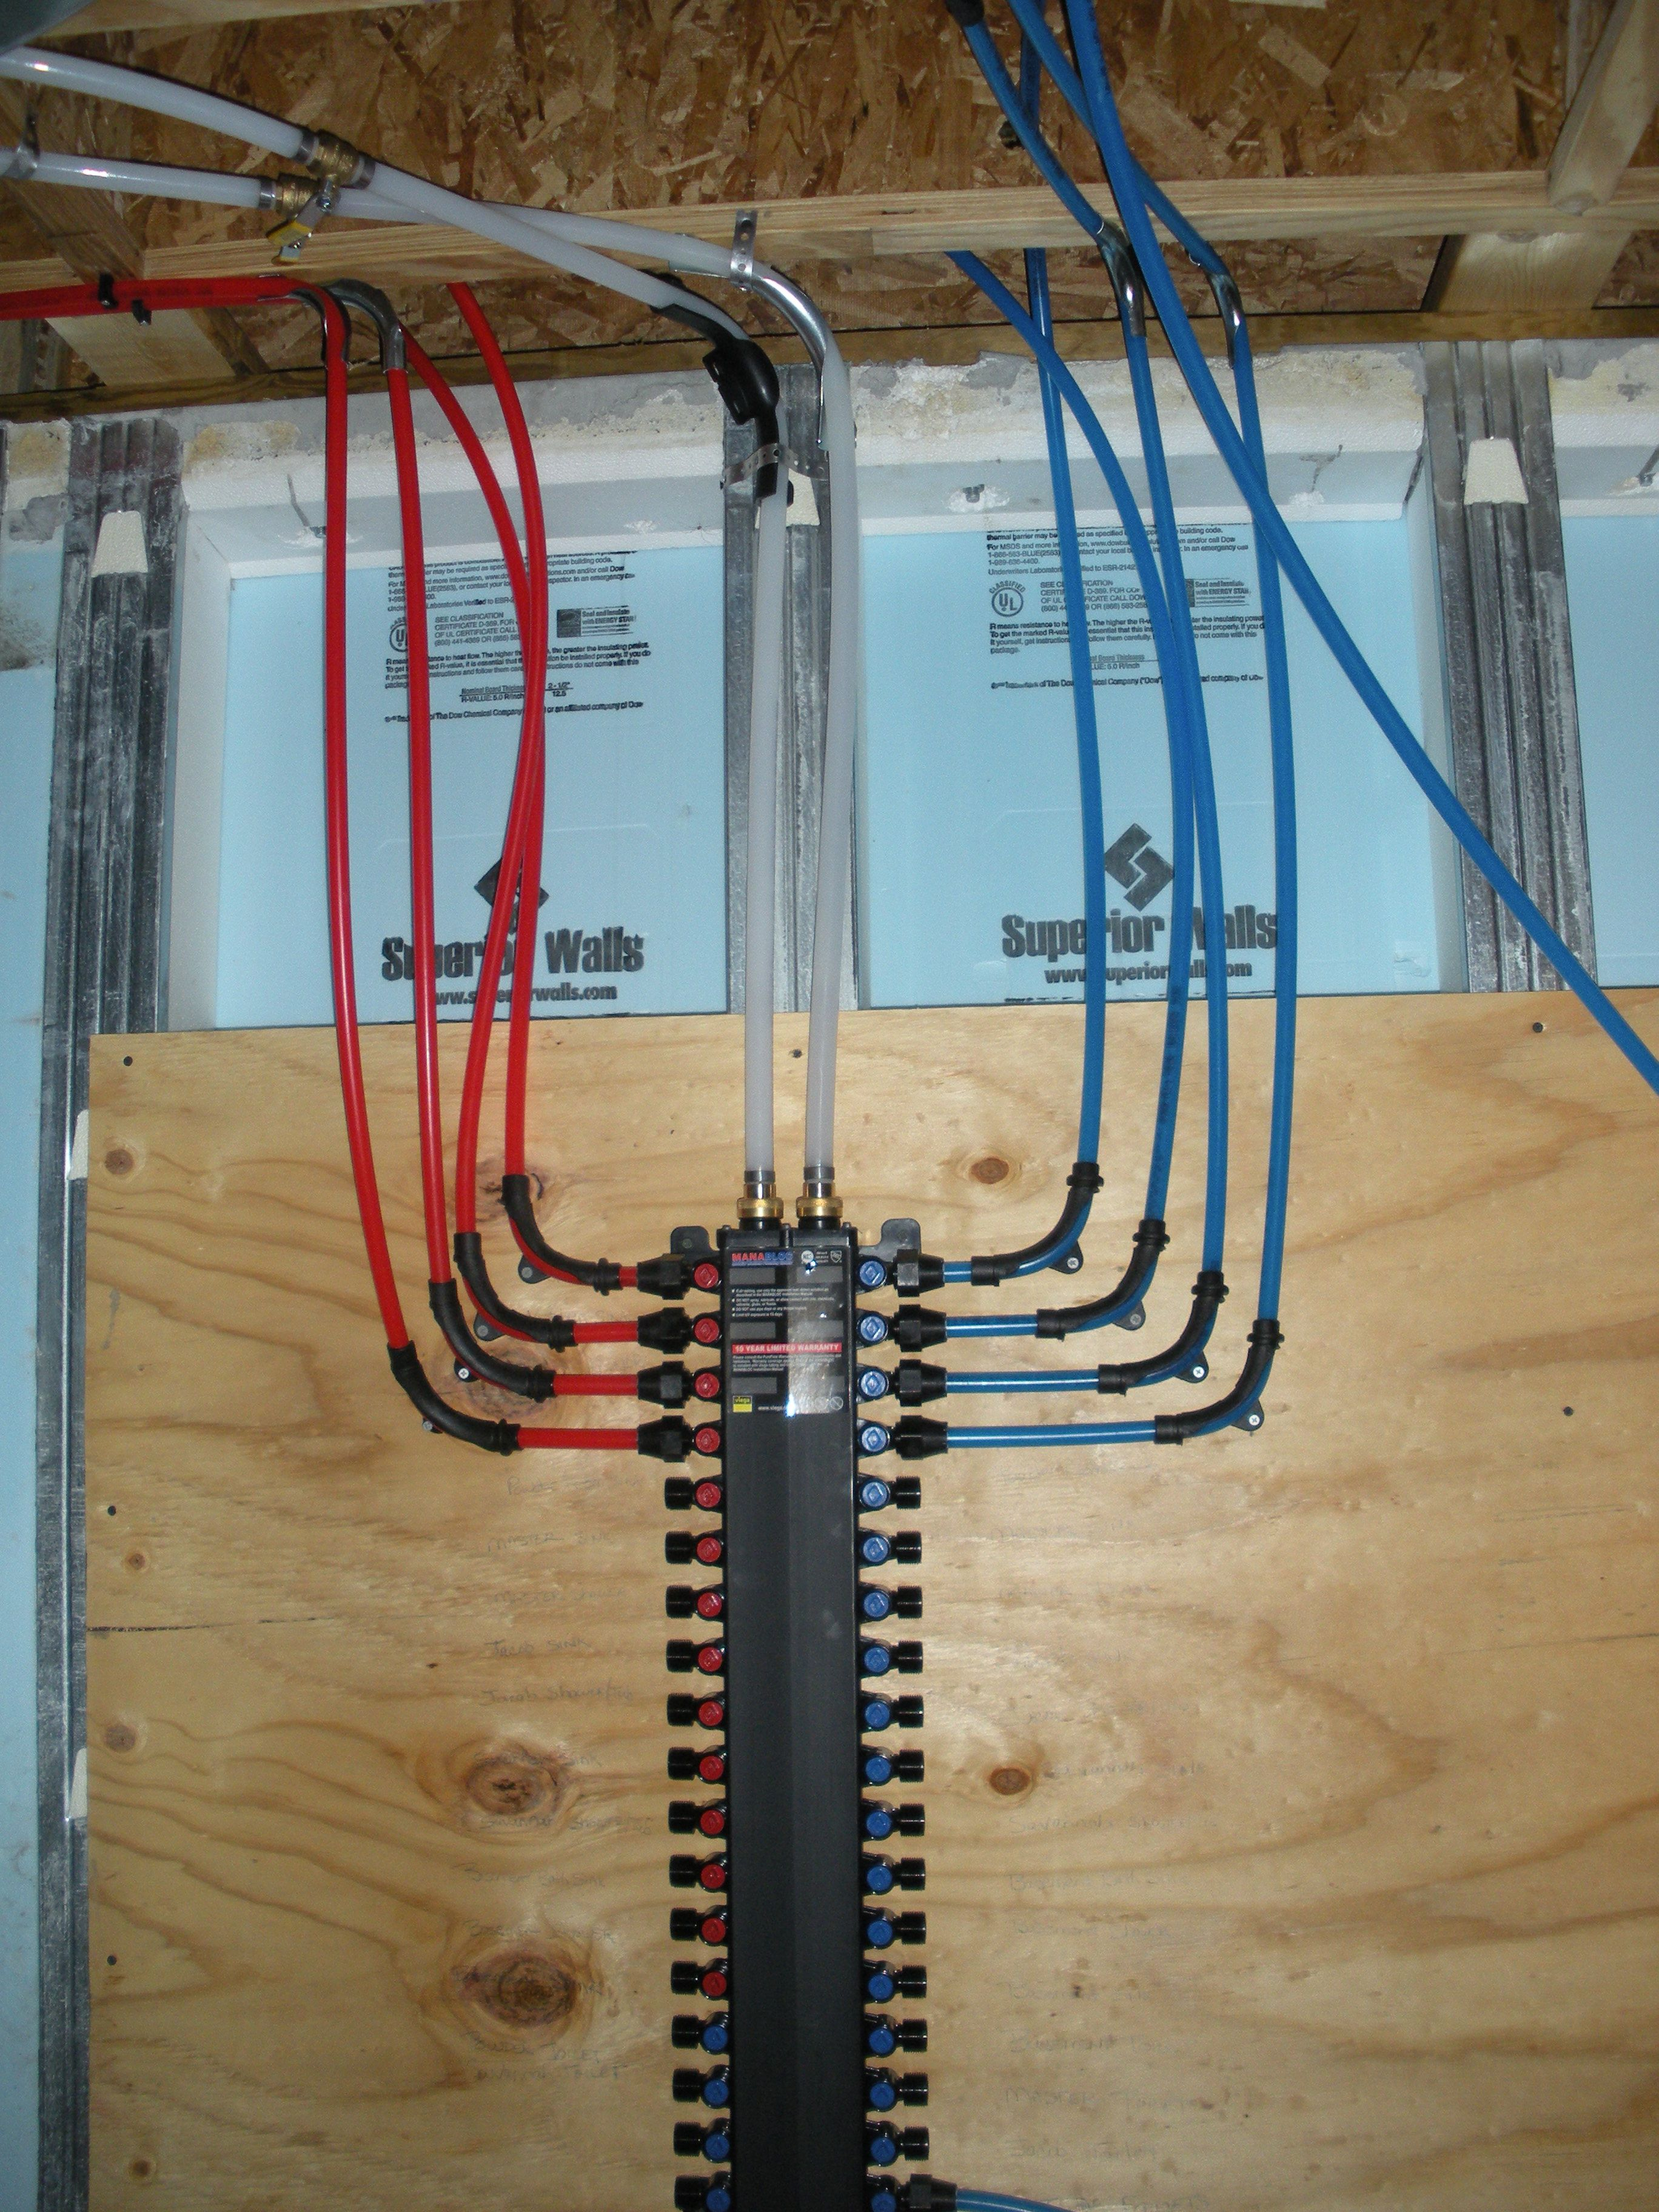 best pex plumbing manifold - Google Search | Plumbing | Pinterest ...